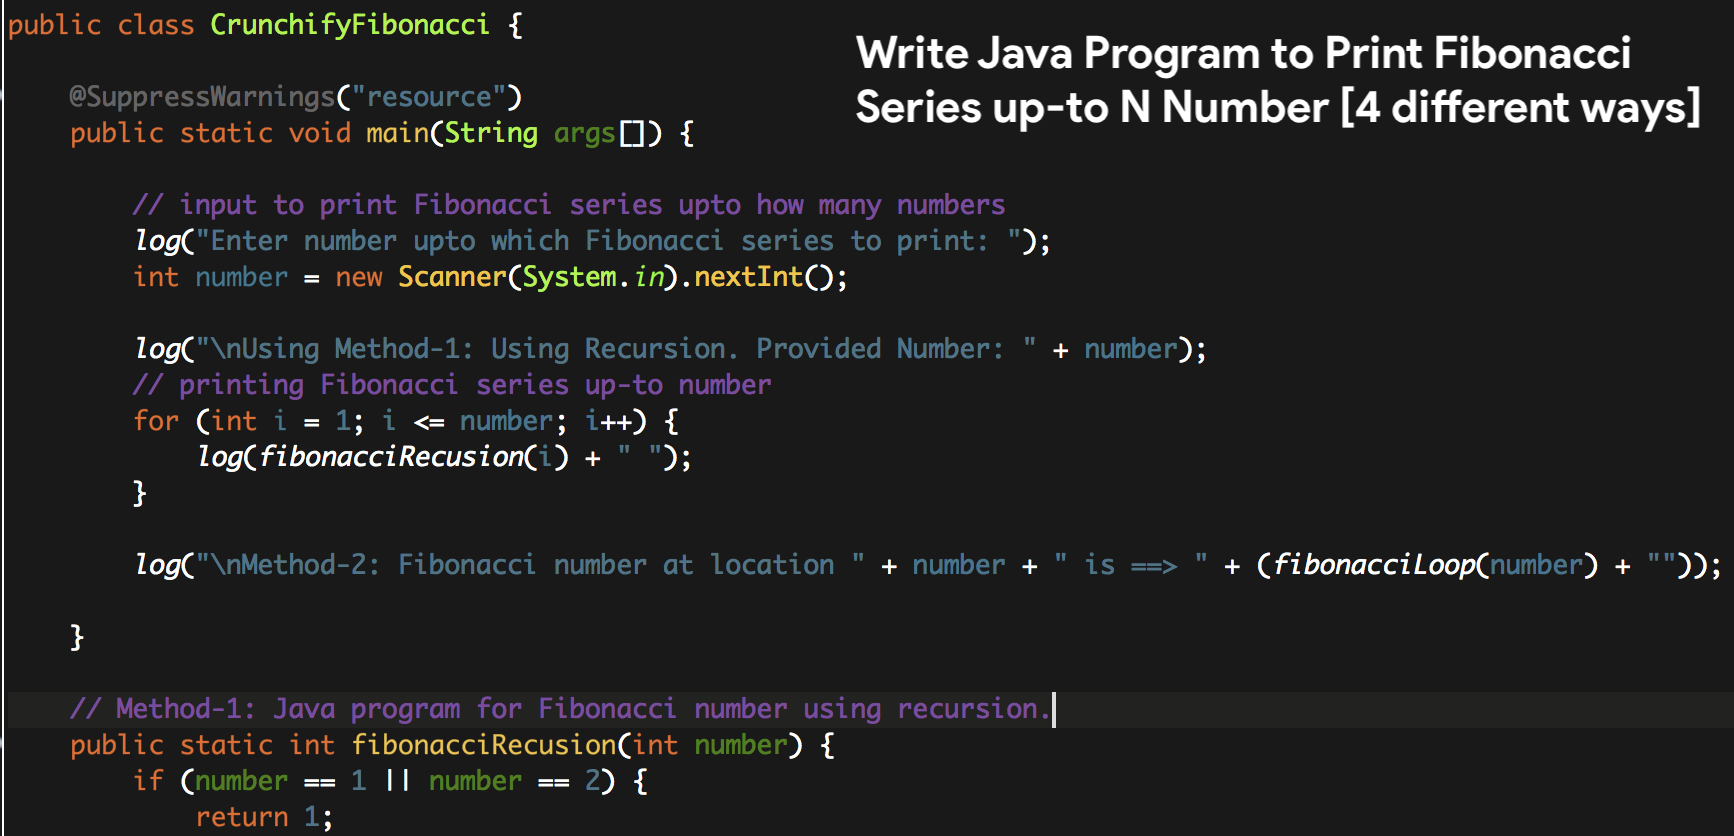 Write Java Program to Print Fibonacci Series up-to N Number [4